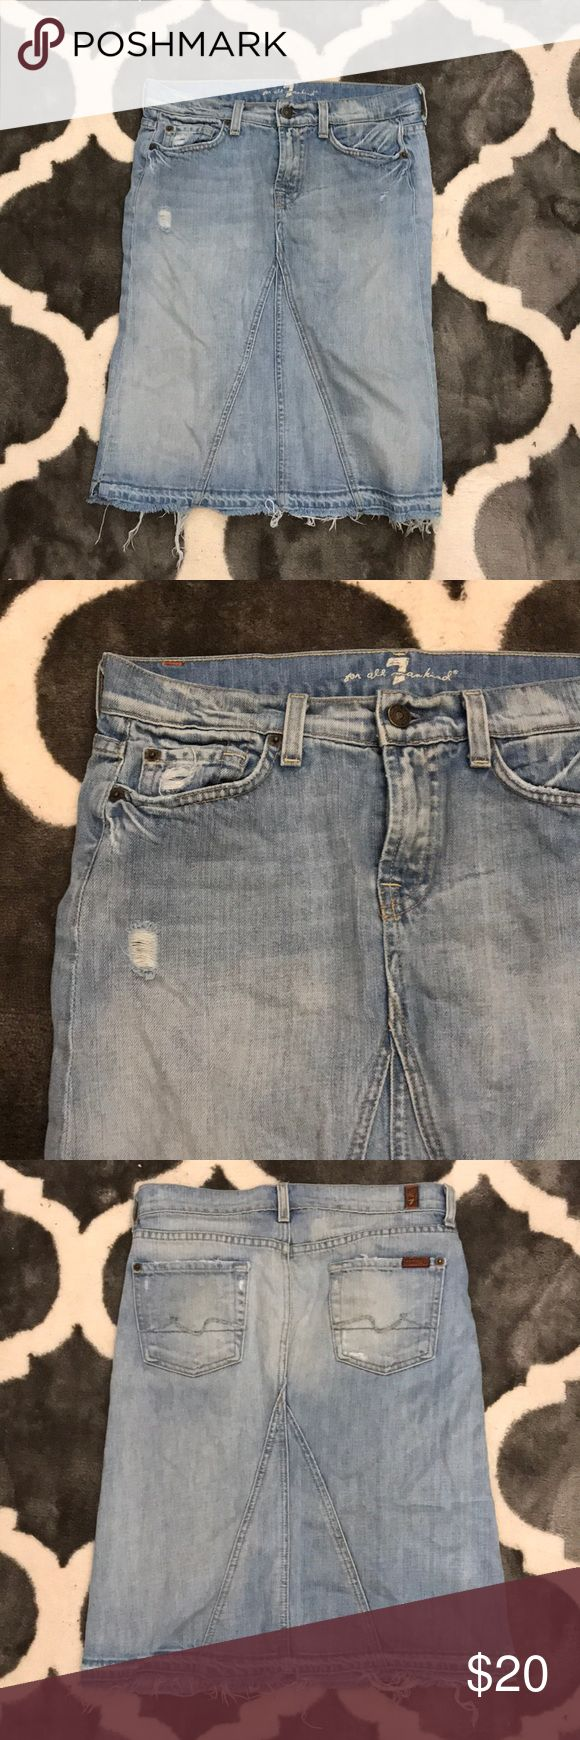 7 FAM distress Skirt 7 for all man kind distressed Jean skirt light wash 7 For All Mankind Skirts